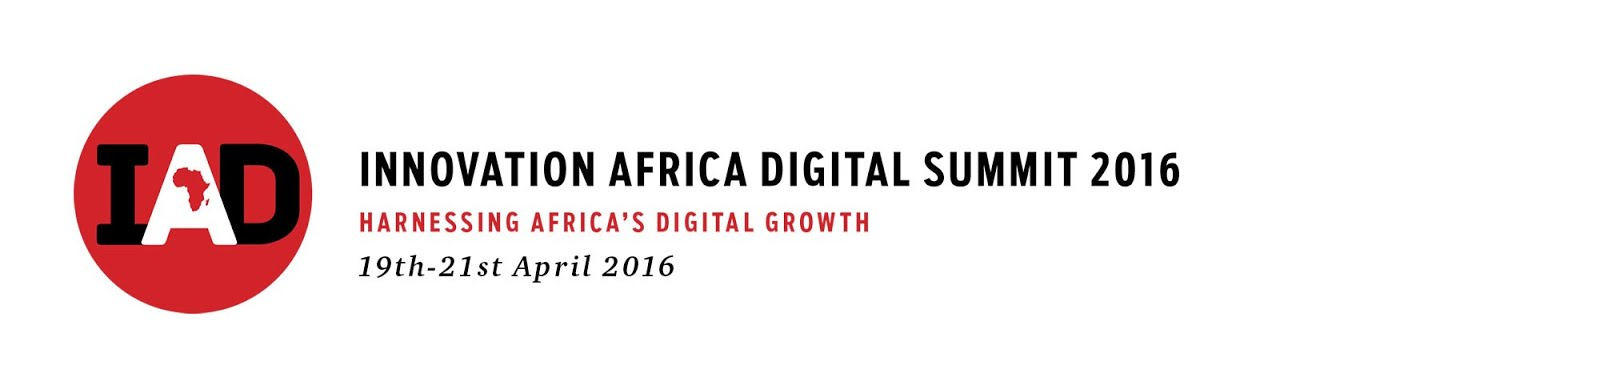 INNOVATION AFRICA DIGITAL (IAD) Summit, April 2016